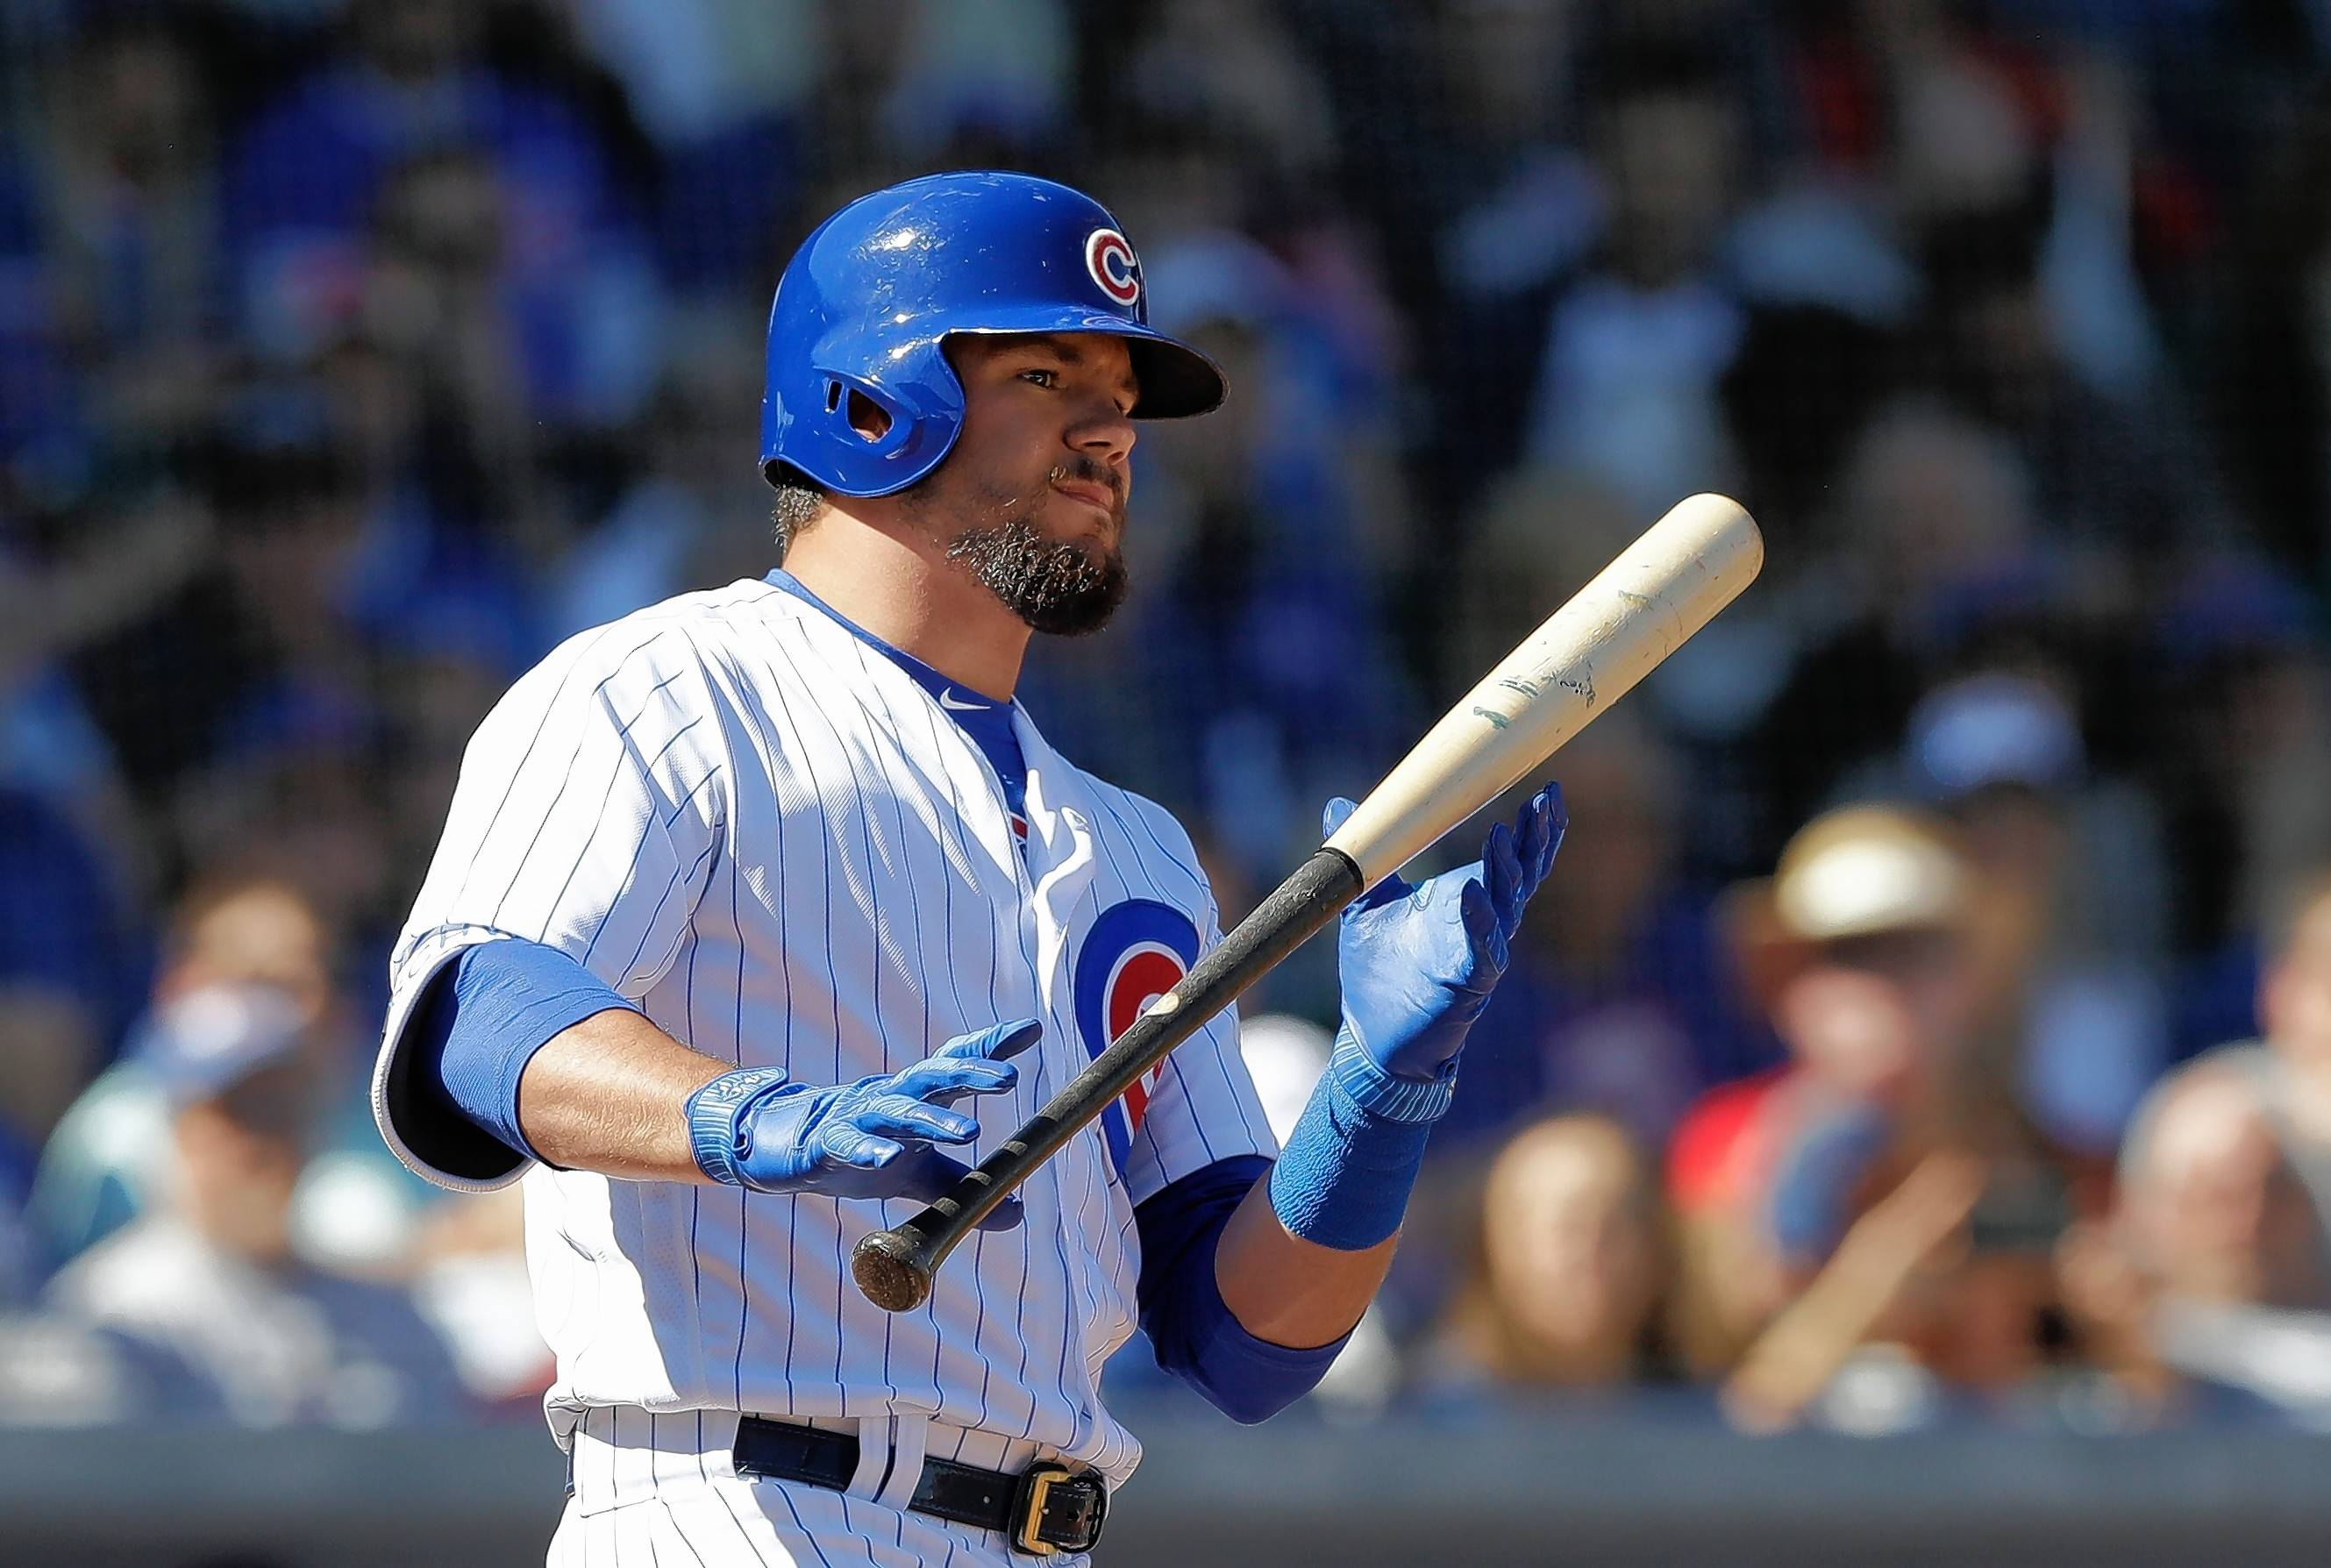 Cubs outfielder Kyle Schwarber, here batting against the White Sox on Tuesday in a spring training game in Mesa, Ariz., says he feels more explosive after his extensive off-season conditioning work.